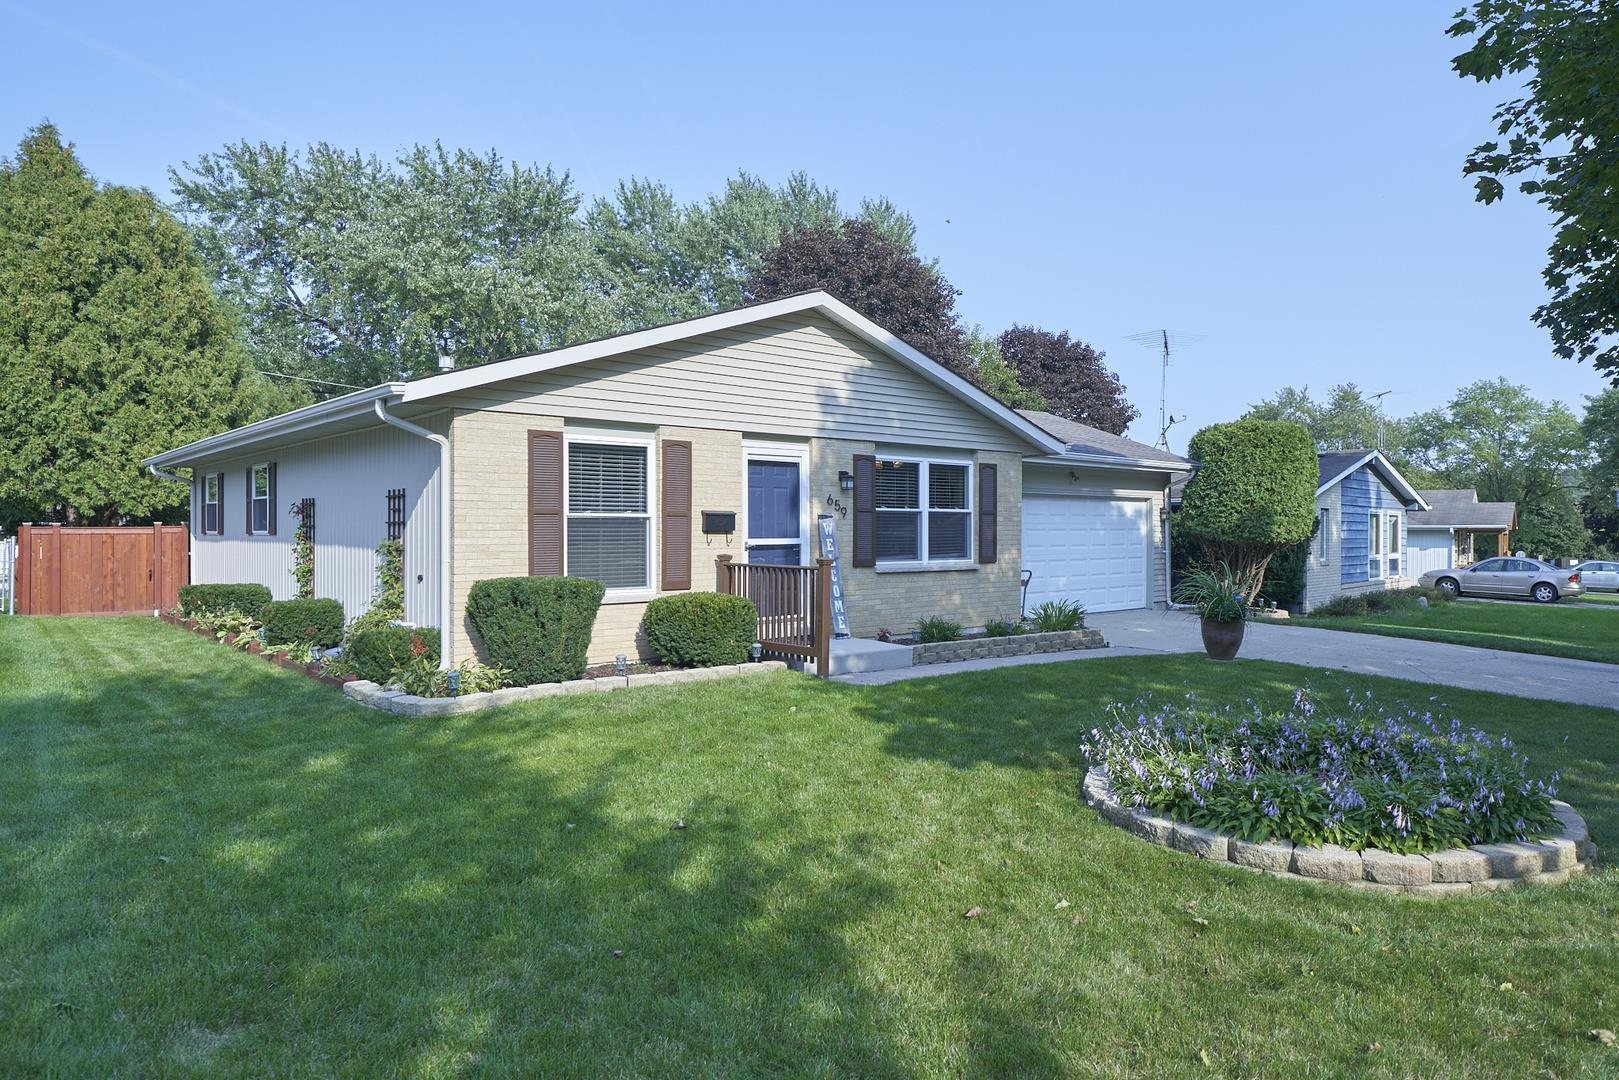 659 S 7th Street, West Dundee, IL 60118 - #: 10878766